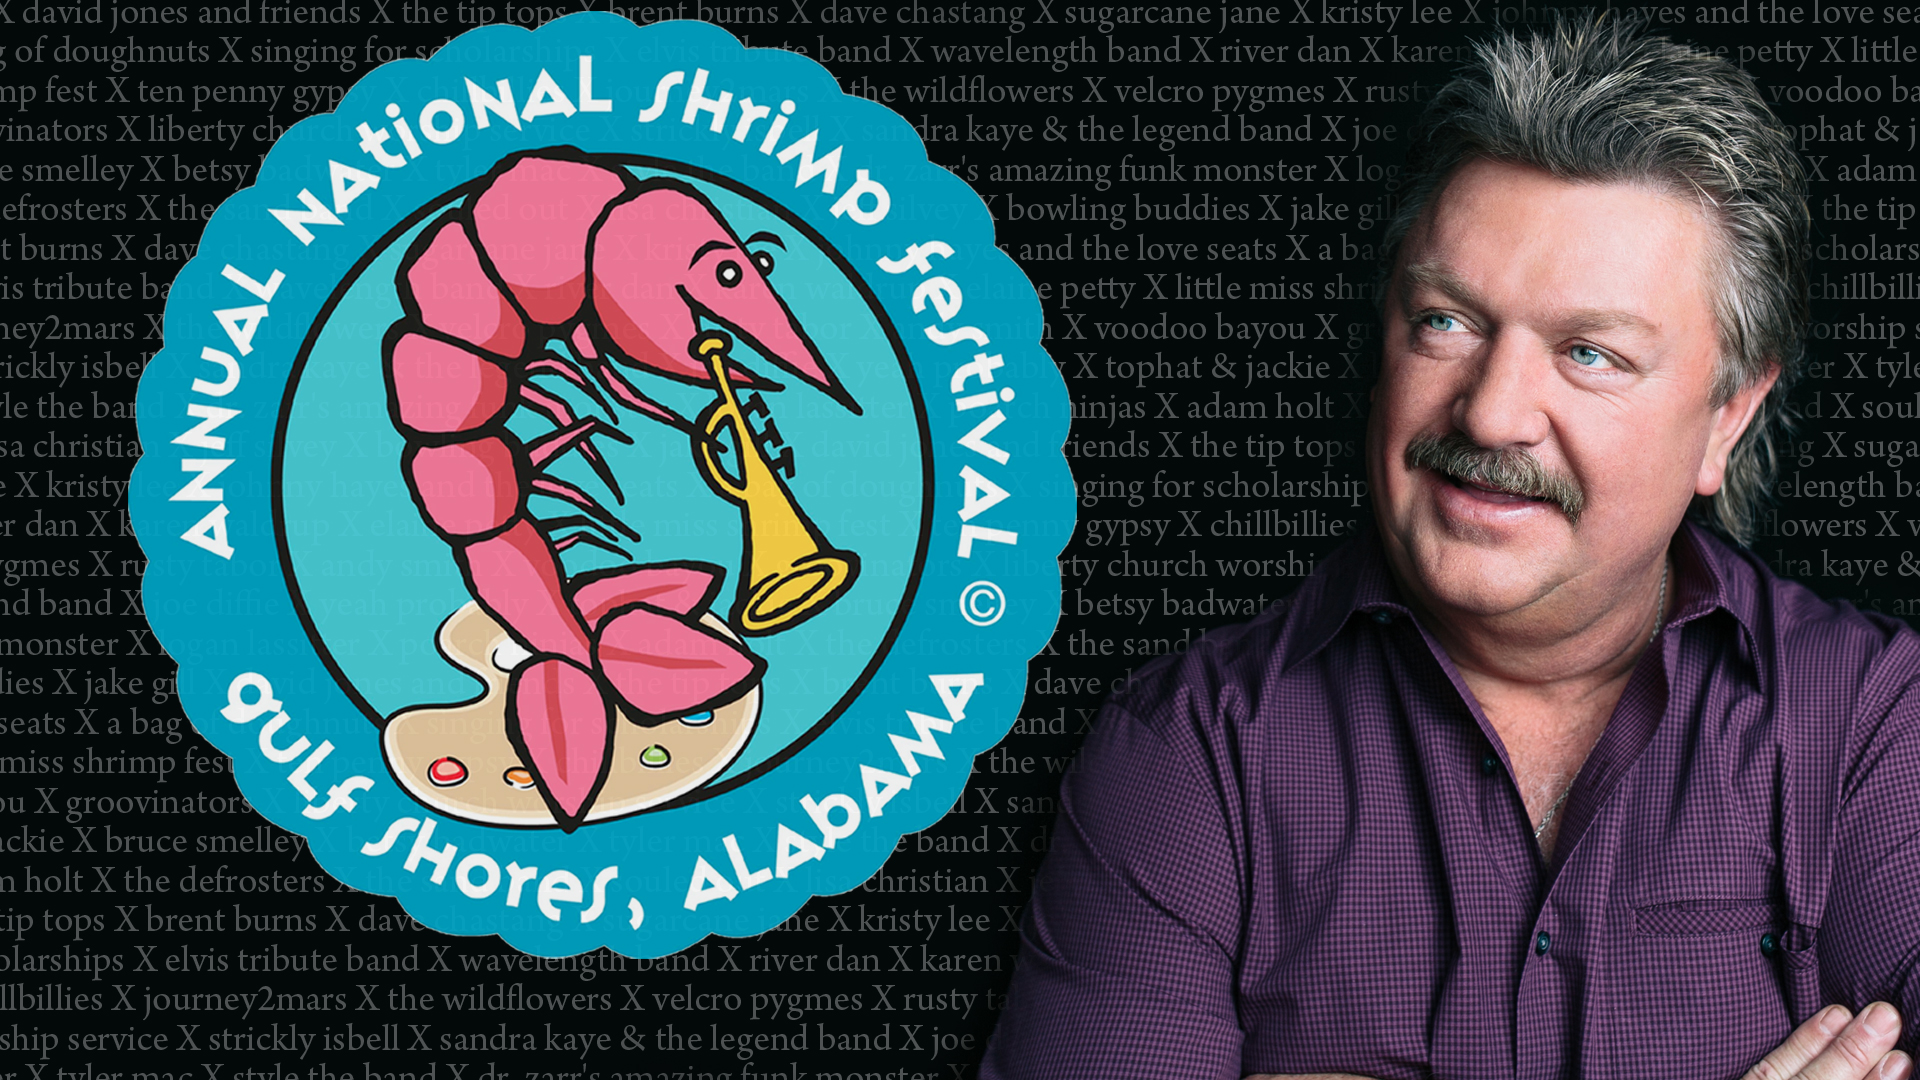 Joe Diffie Performing at 47th National Shrimp Festival